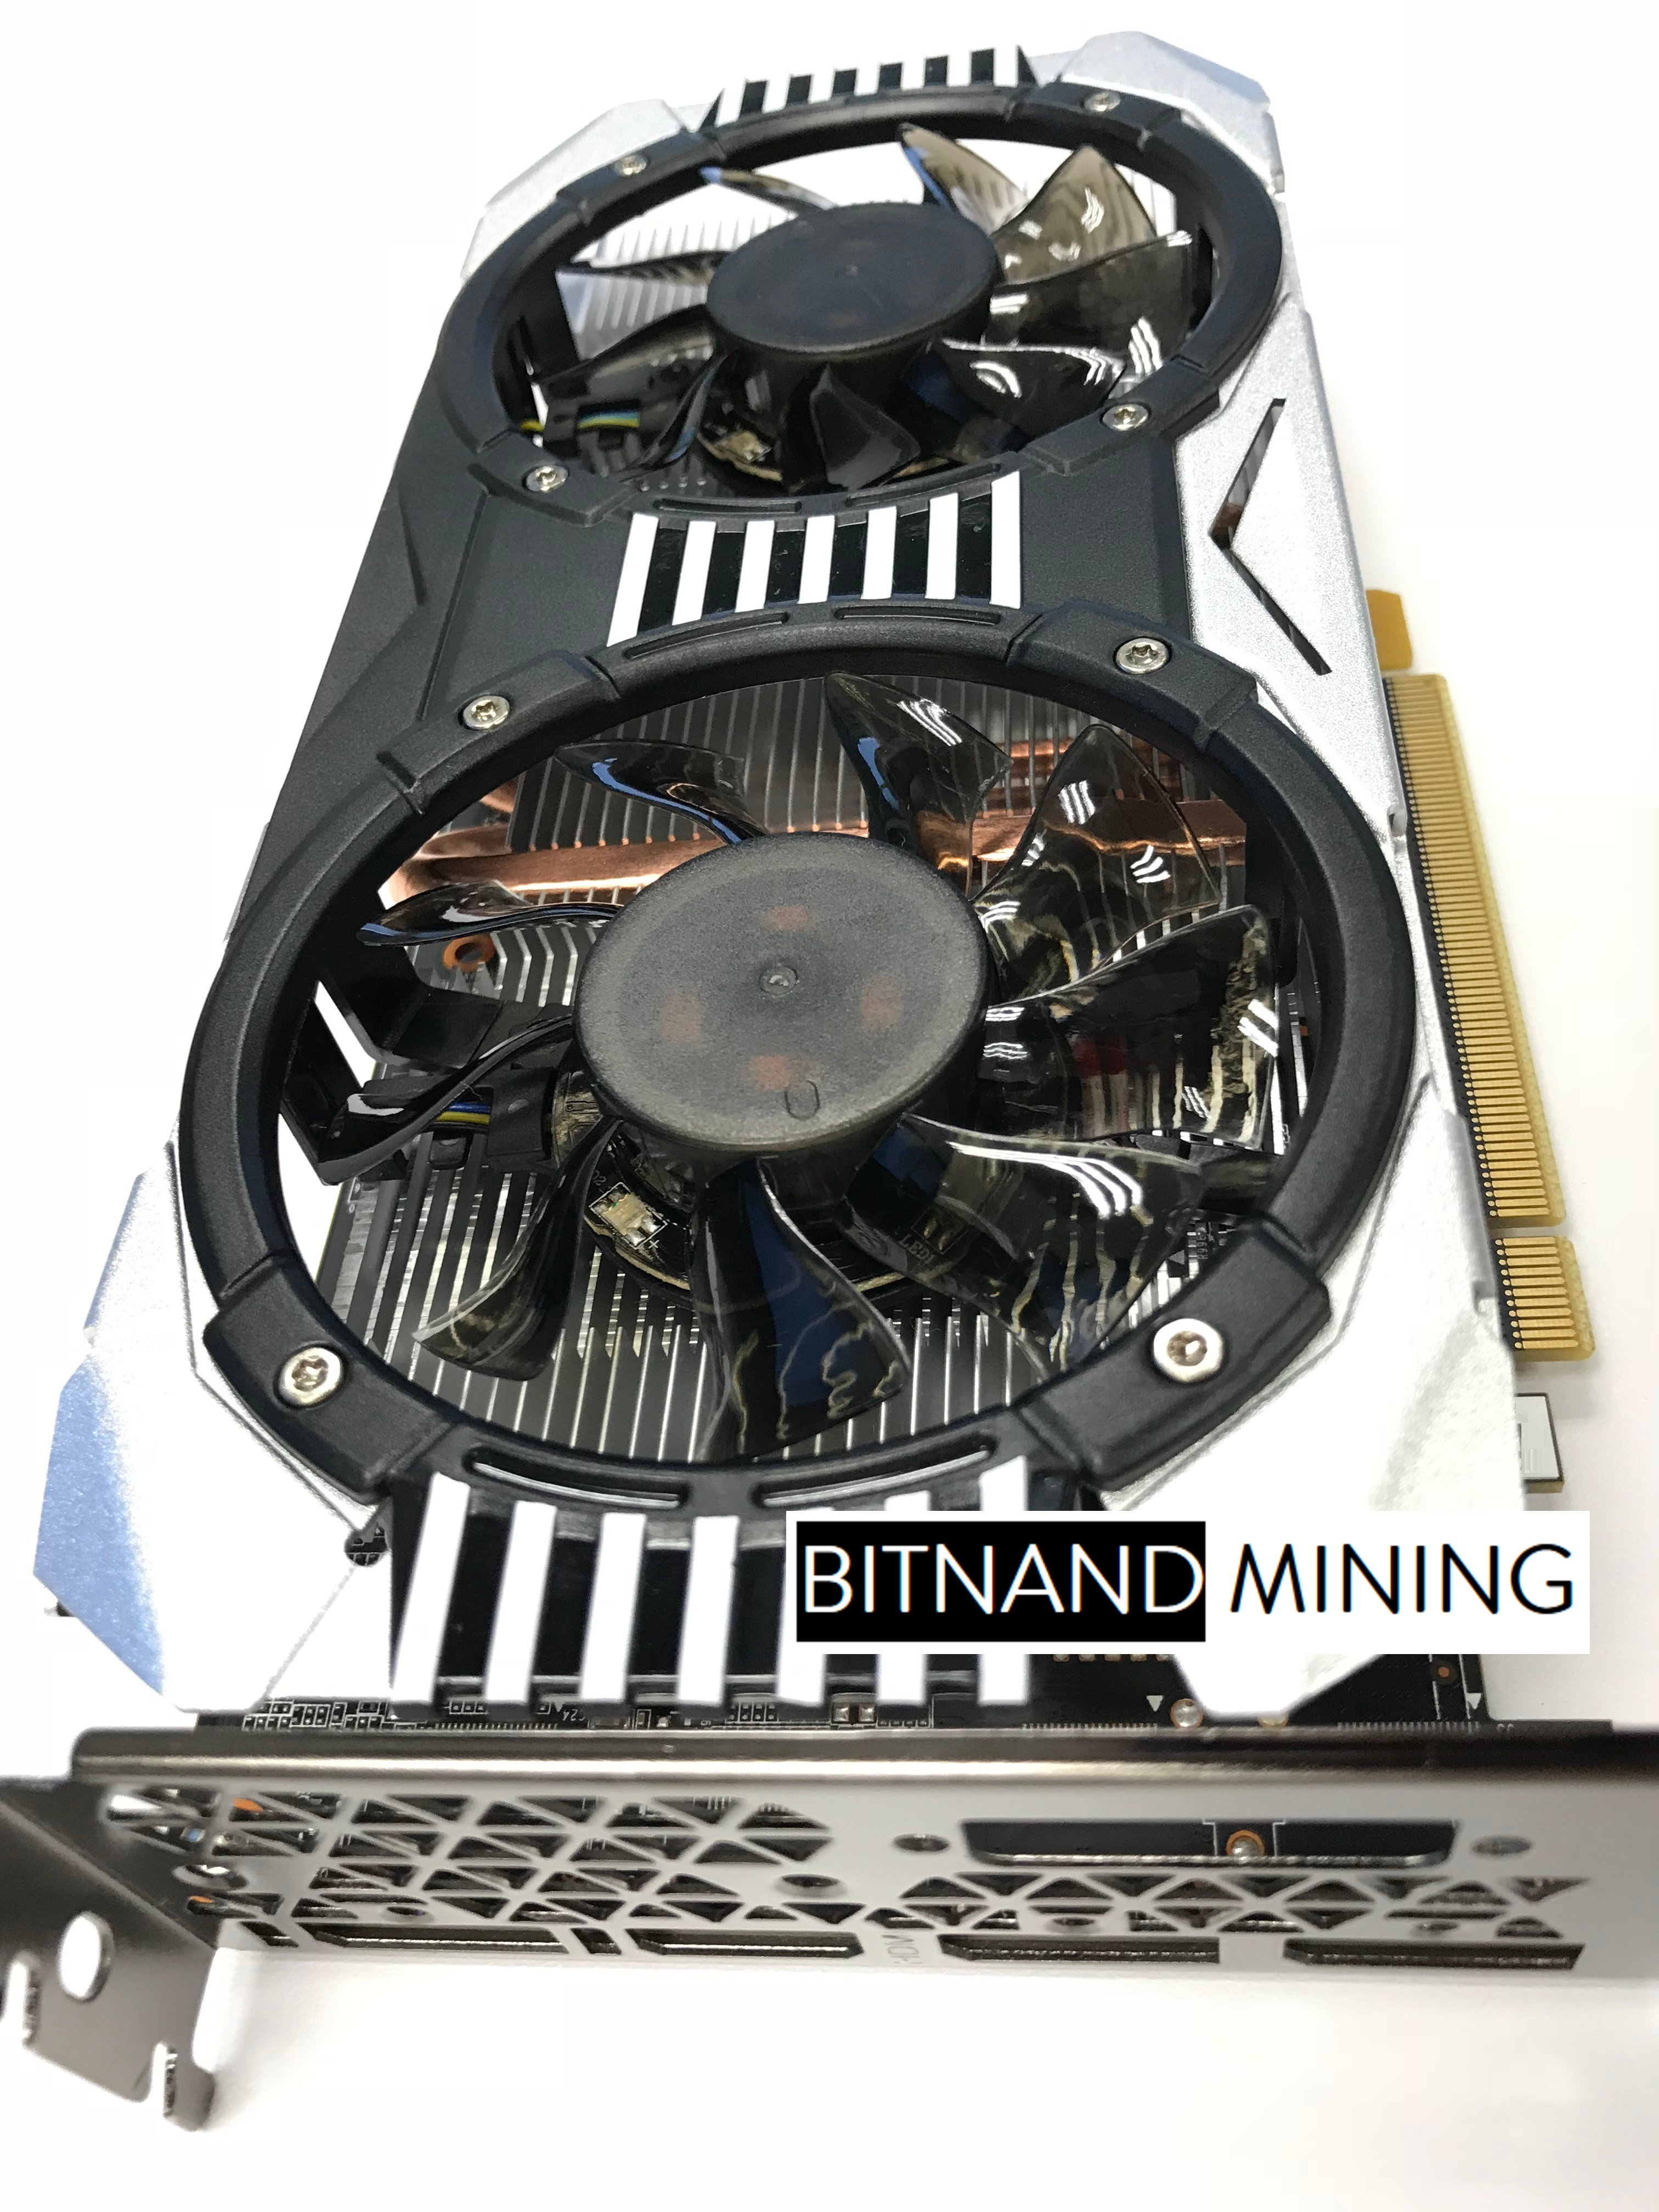 NVIDIA P106-090 Mining Card FOR SALE NOW